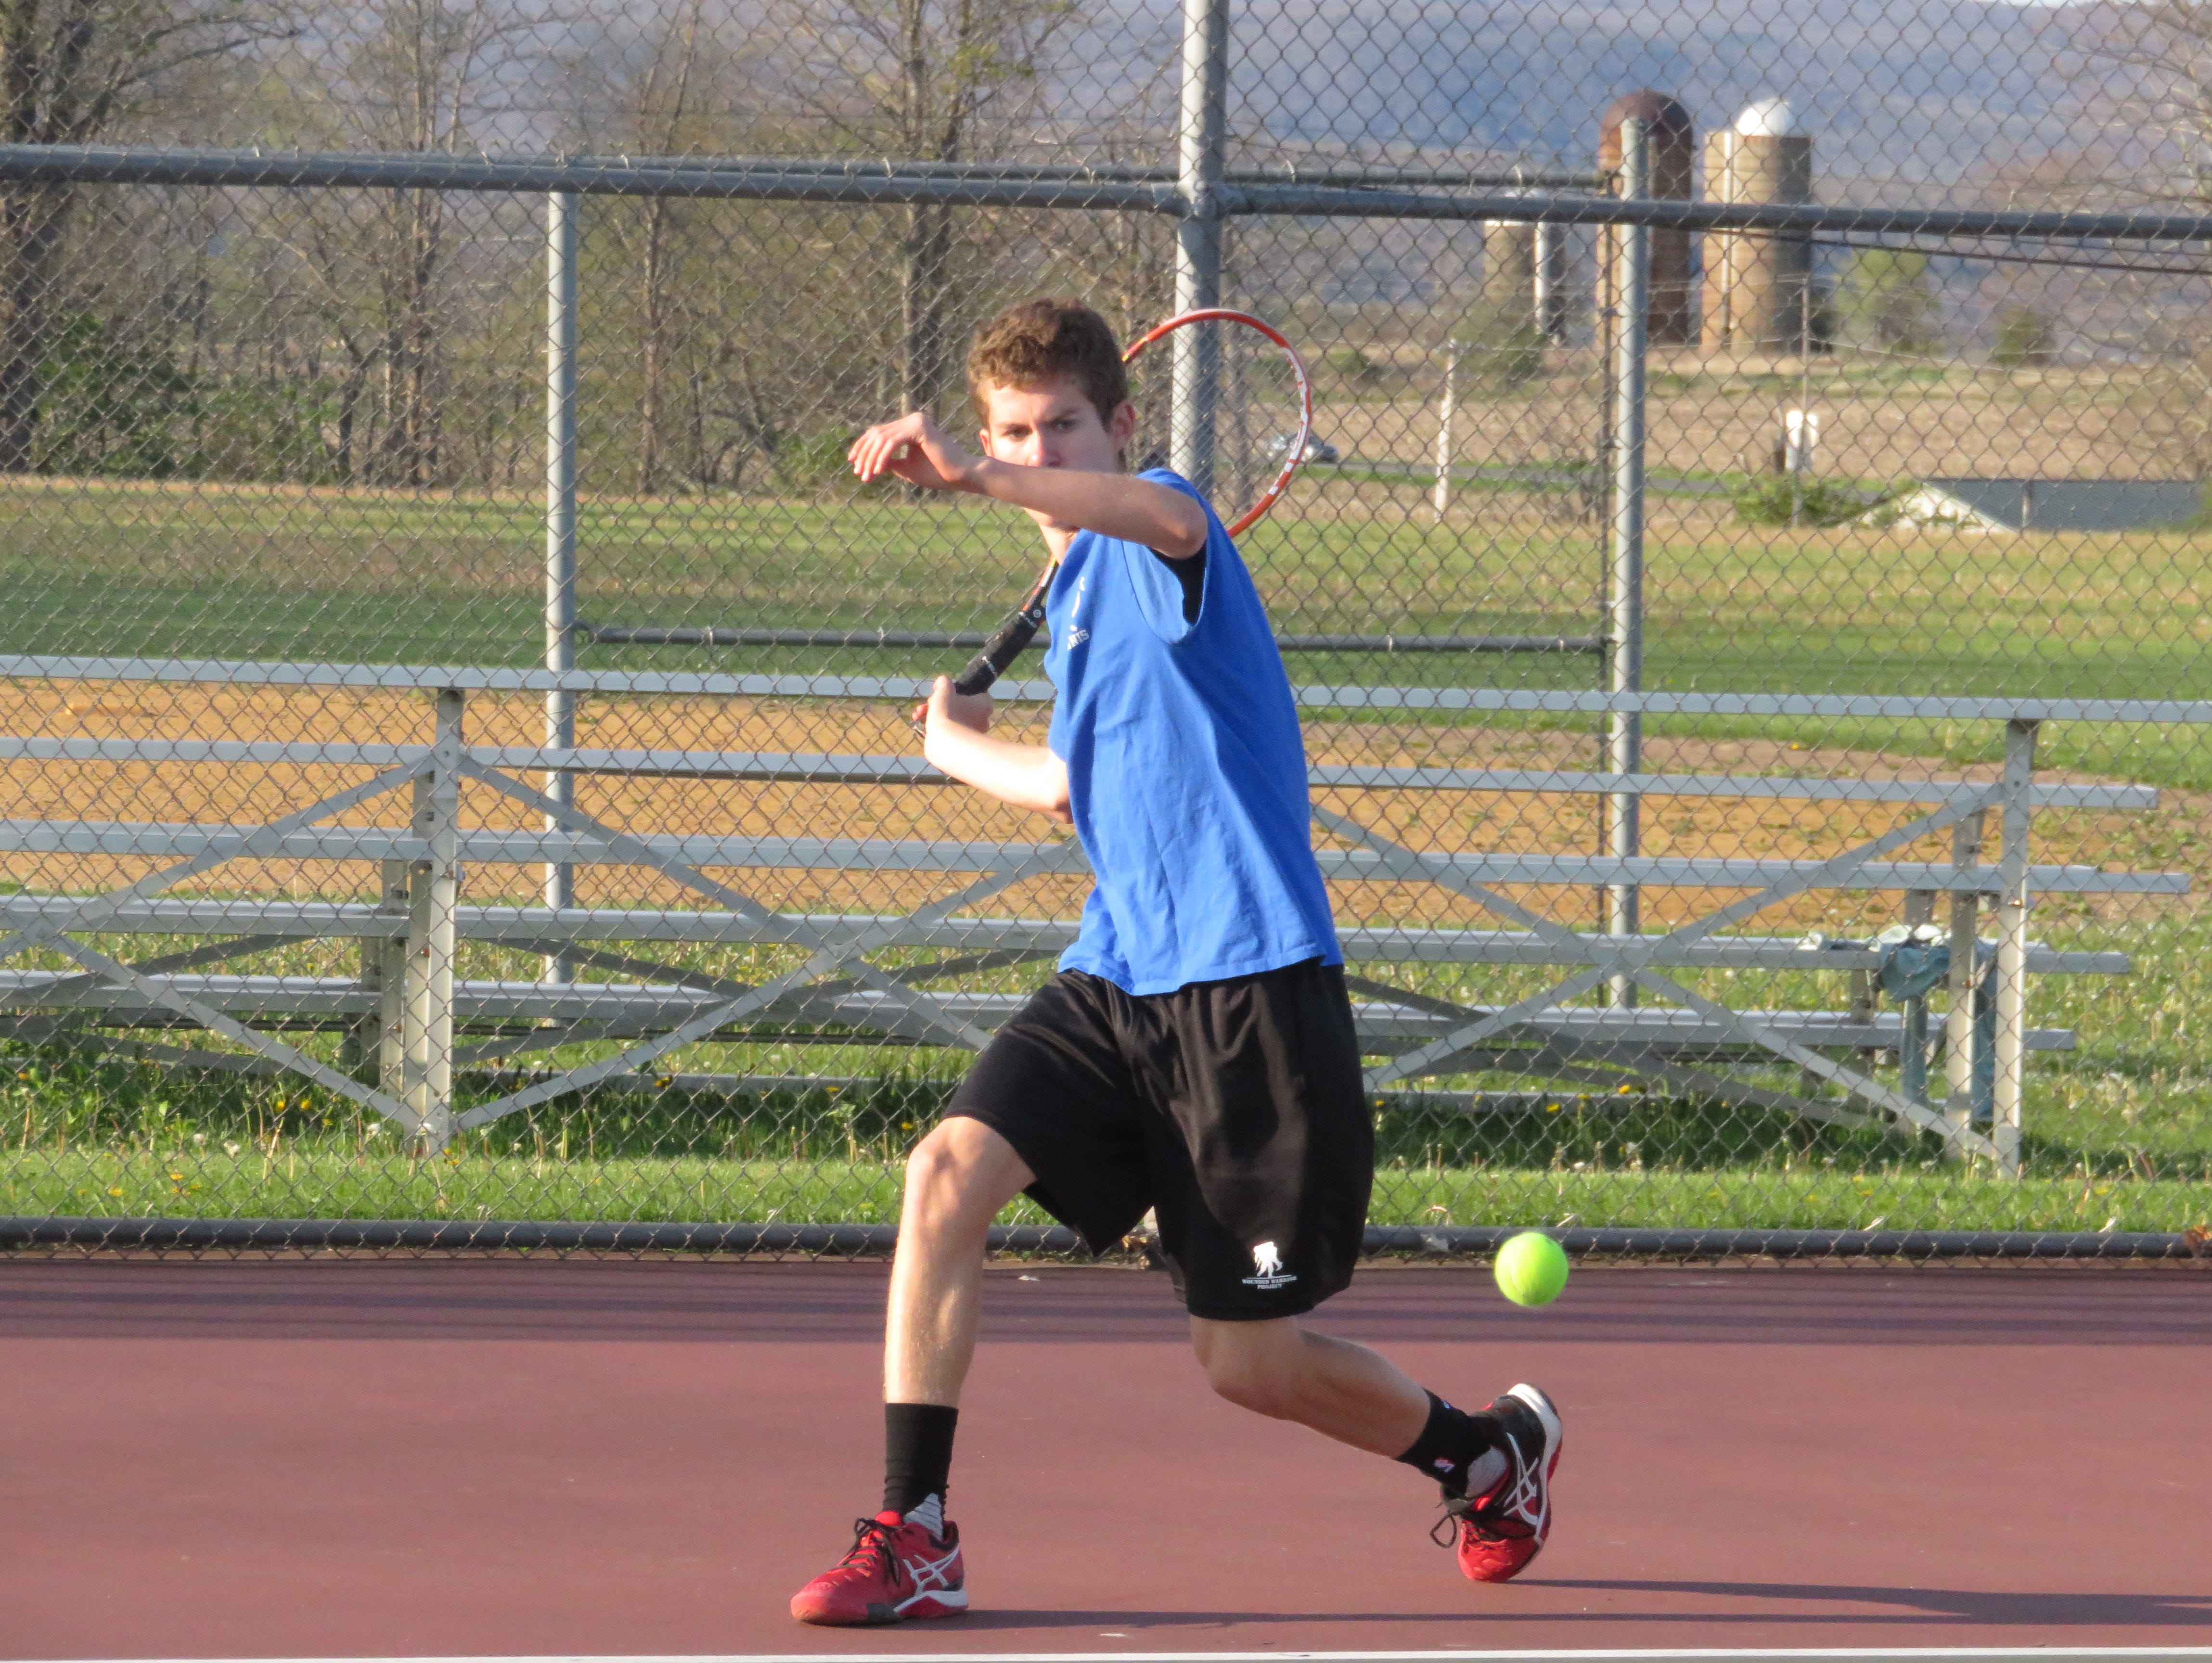 Millbrook High School boys tennis player Daniel Feigelson takes a swing on the court.